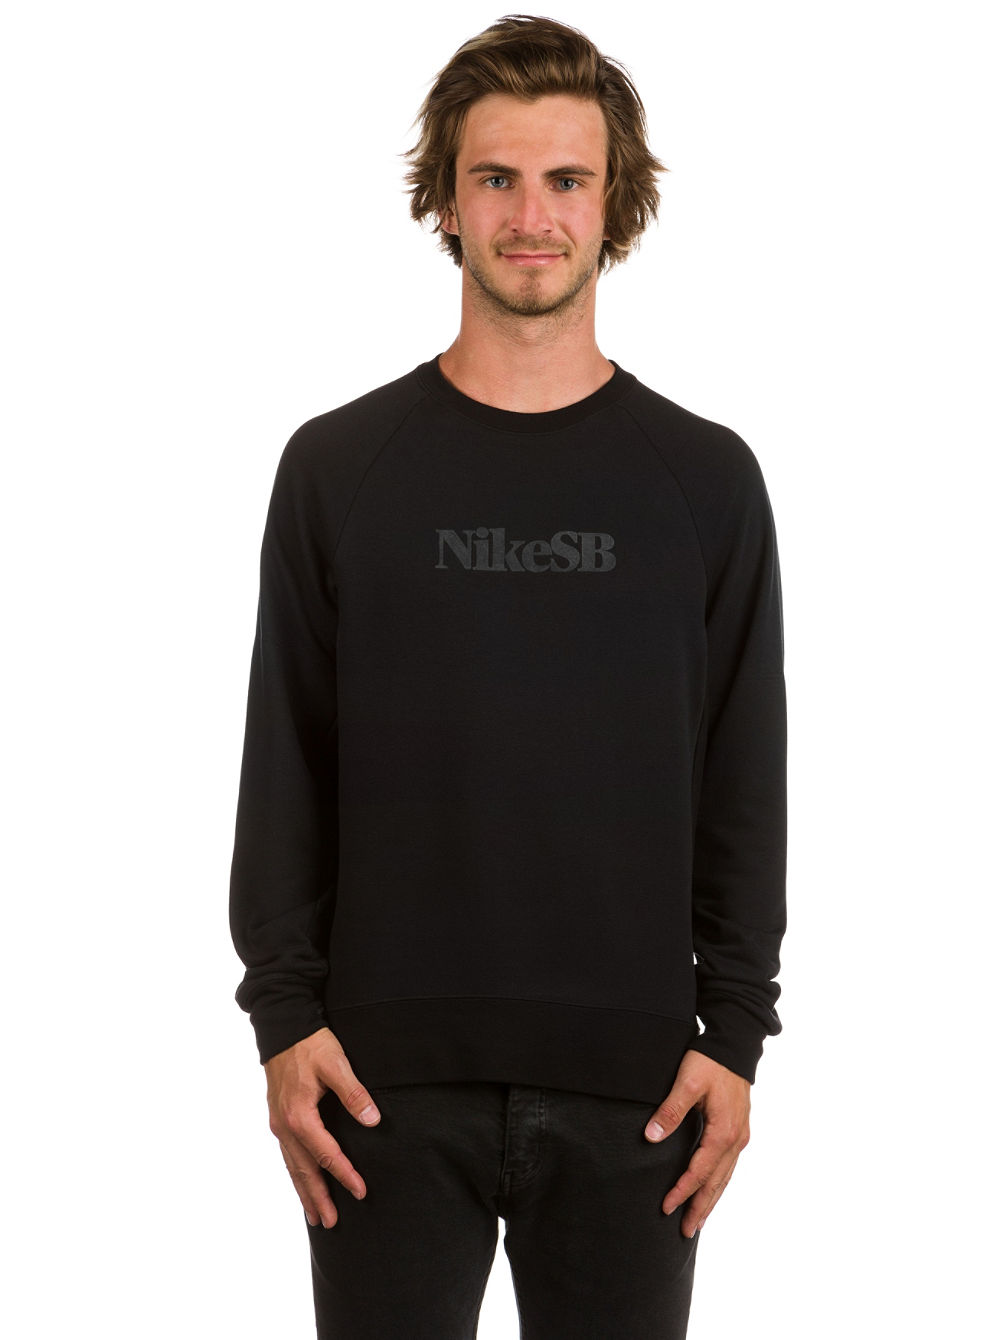 SB Dry Everett Crew Sweater